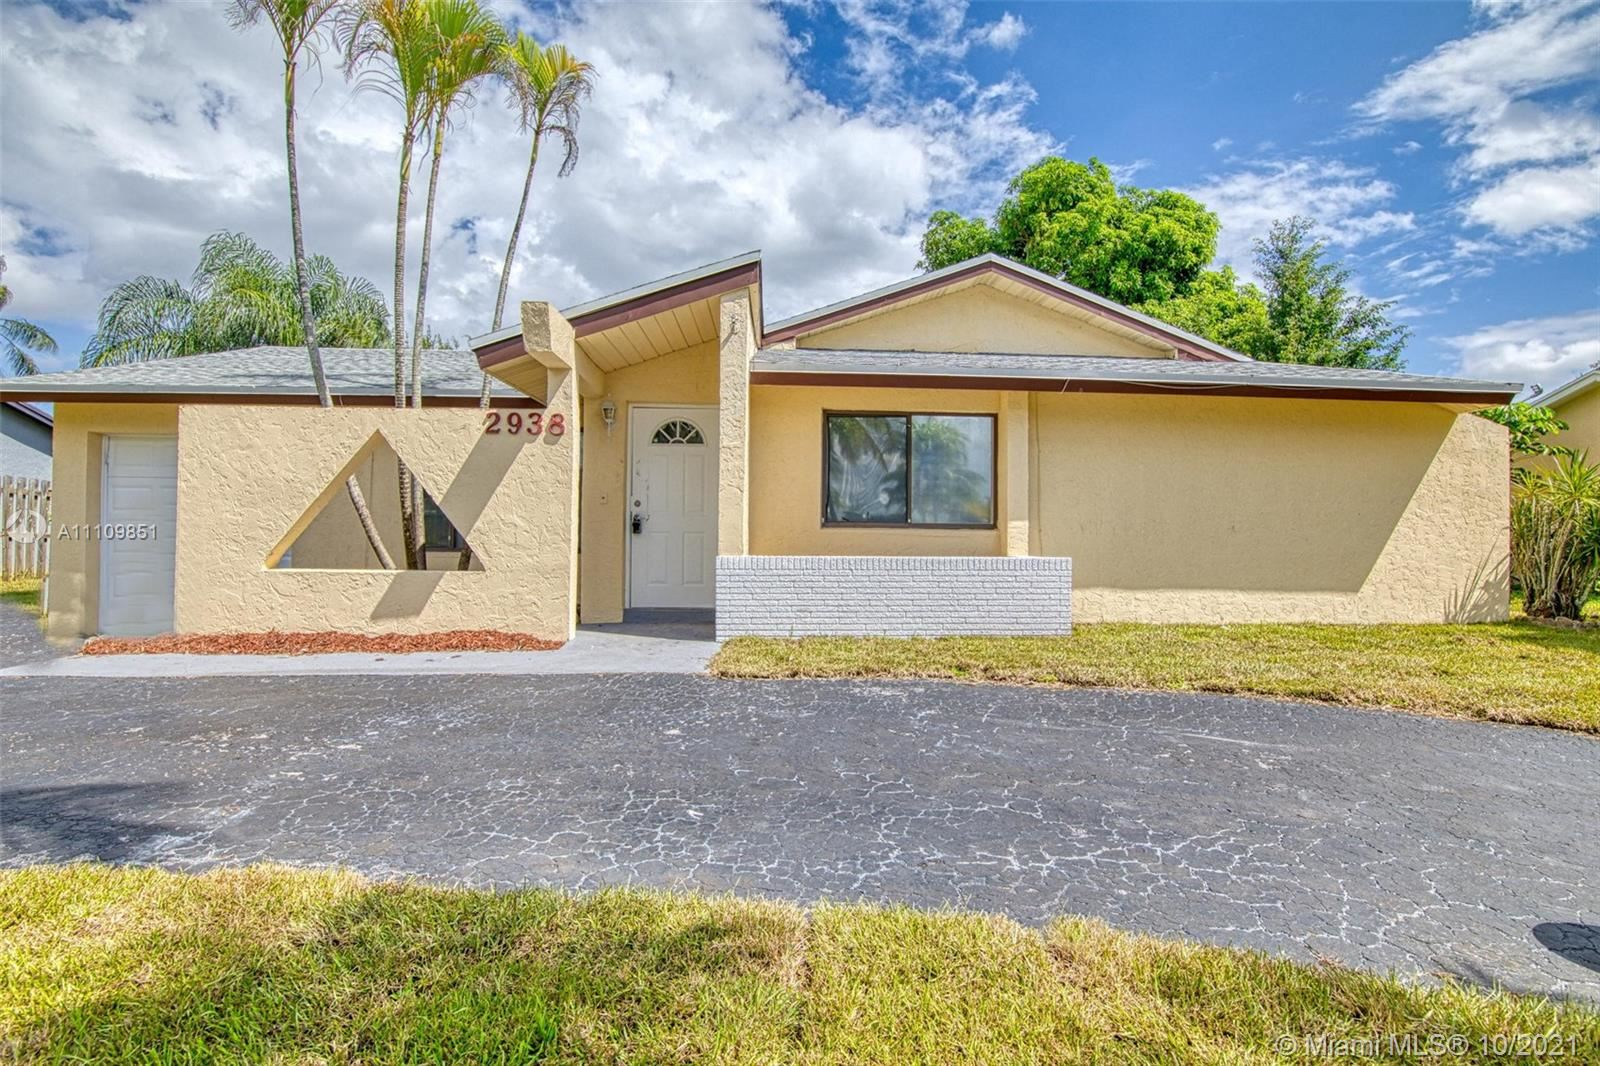 2938 NW 51st Ter, Margate, FL 33063 - #: A11109851